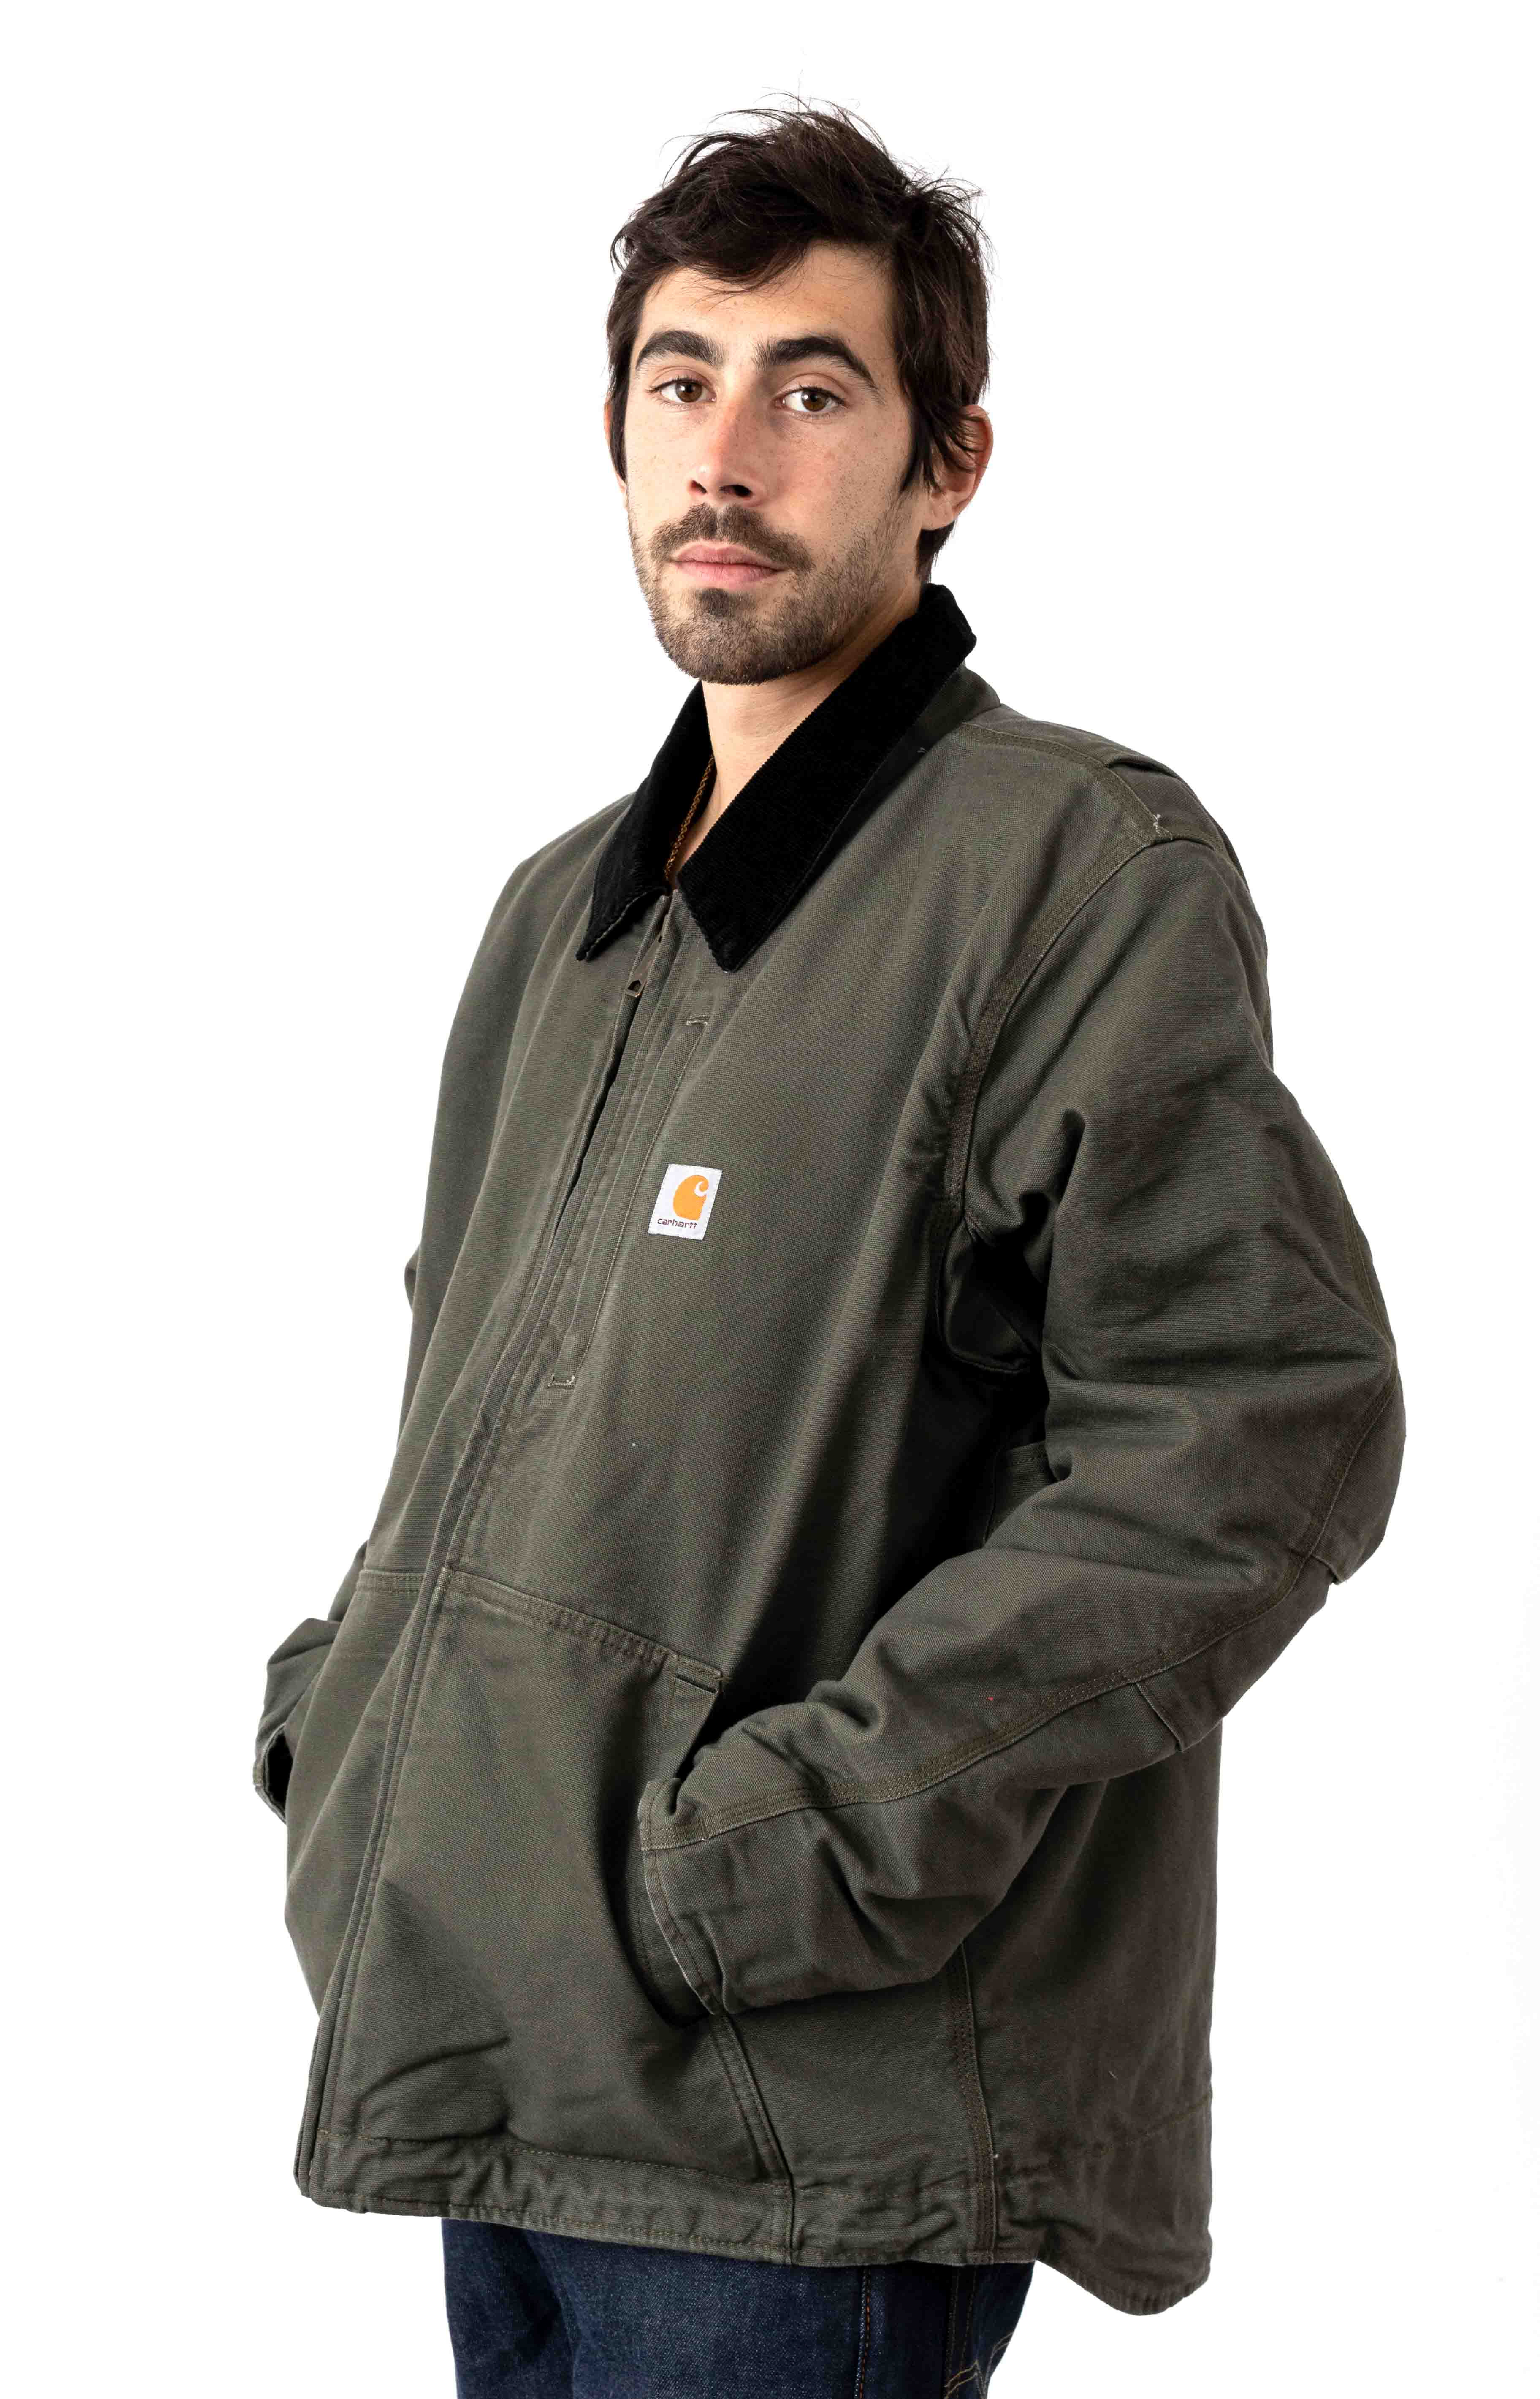 (103370) Full Swing Armstrong Jacket - Moss 2